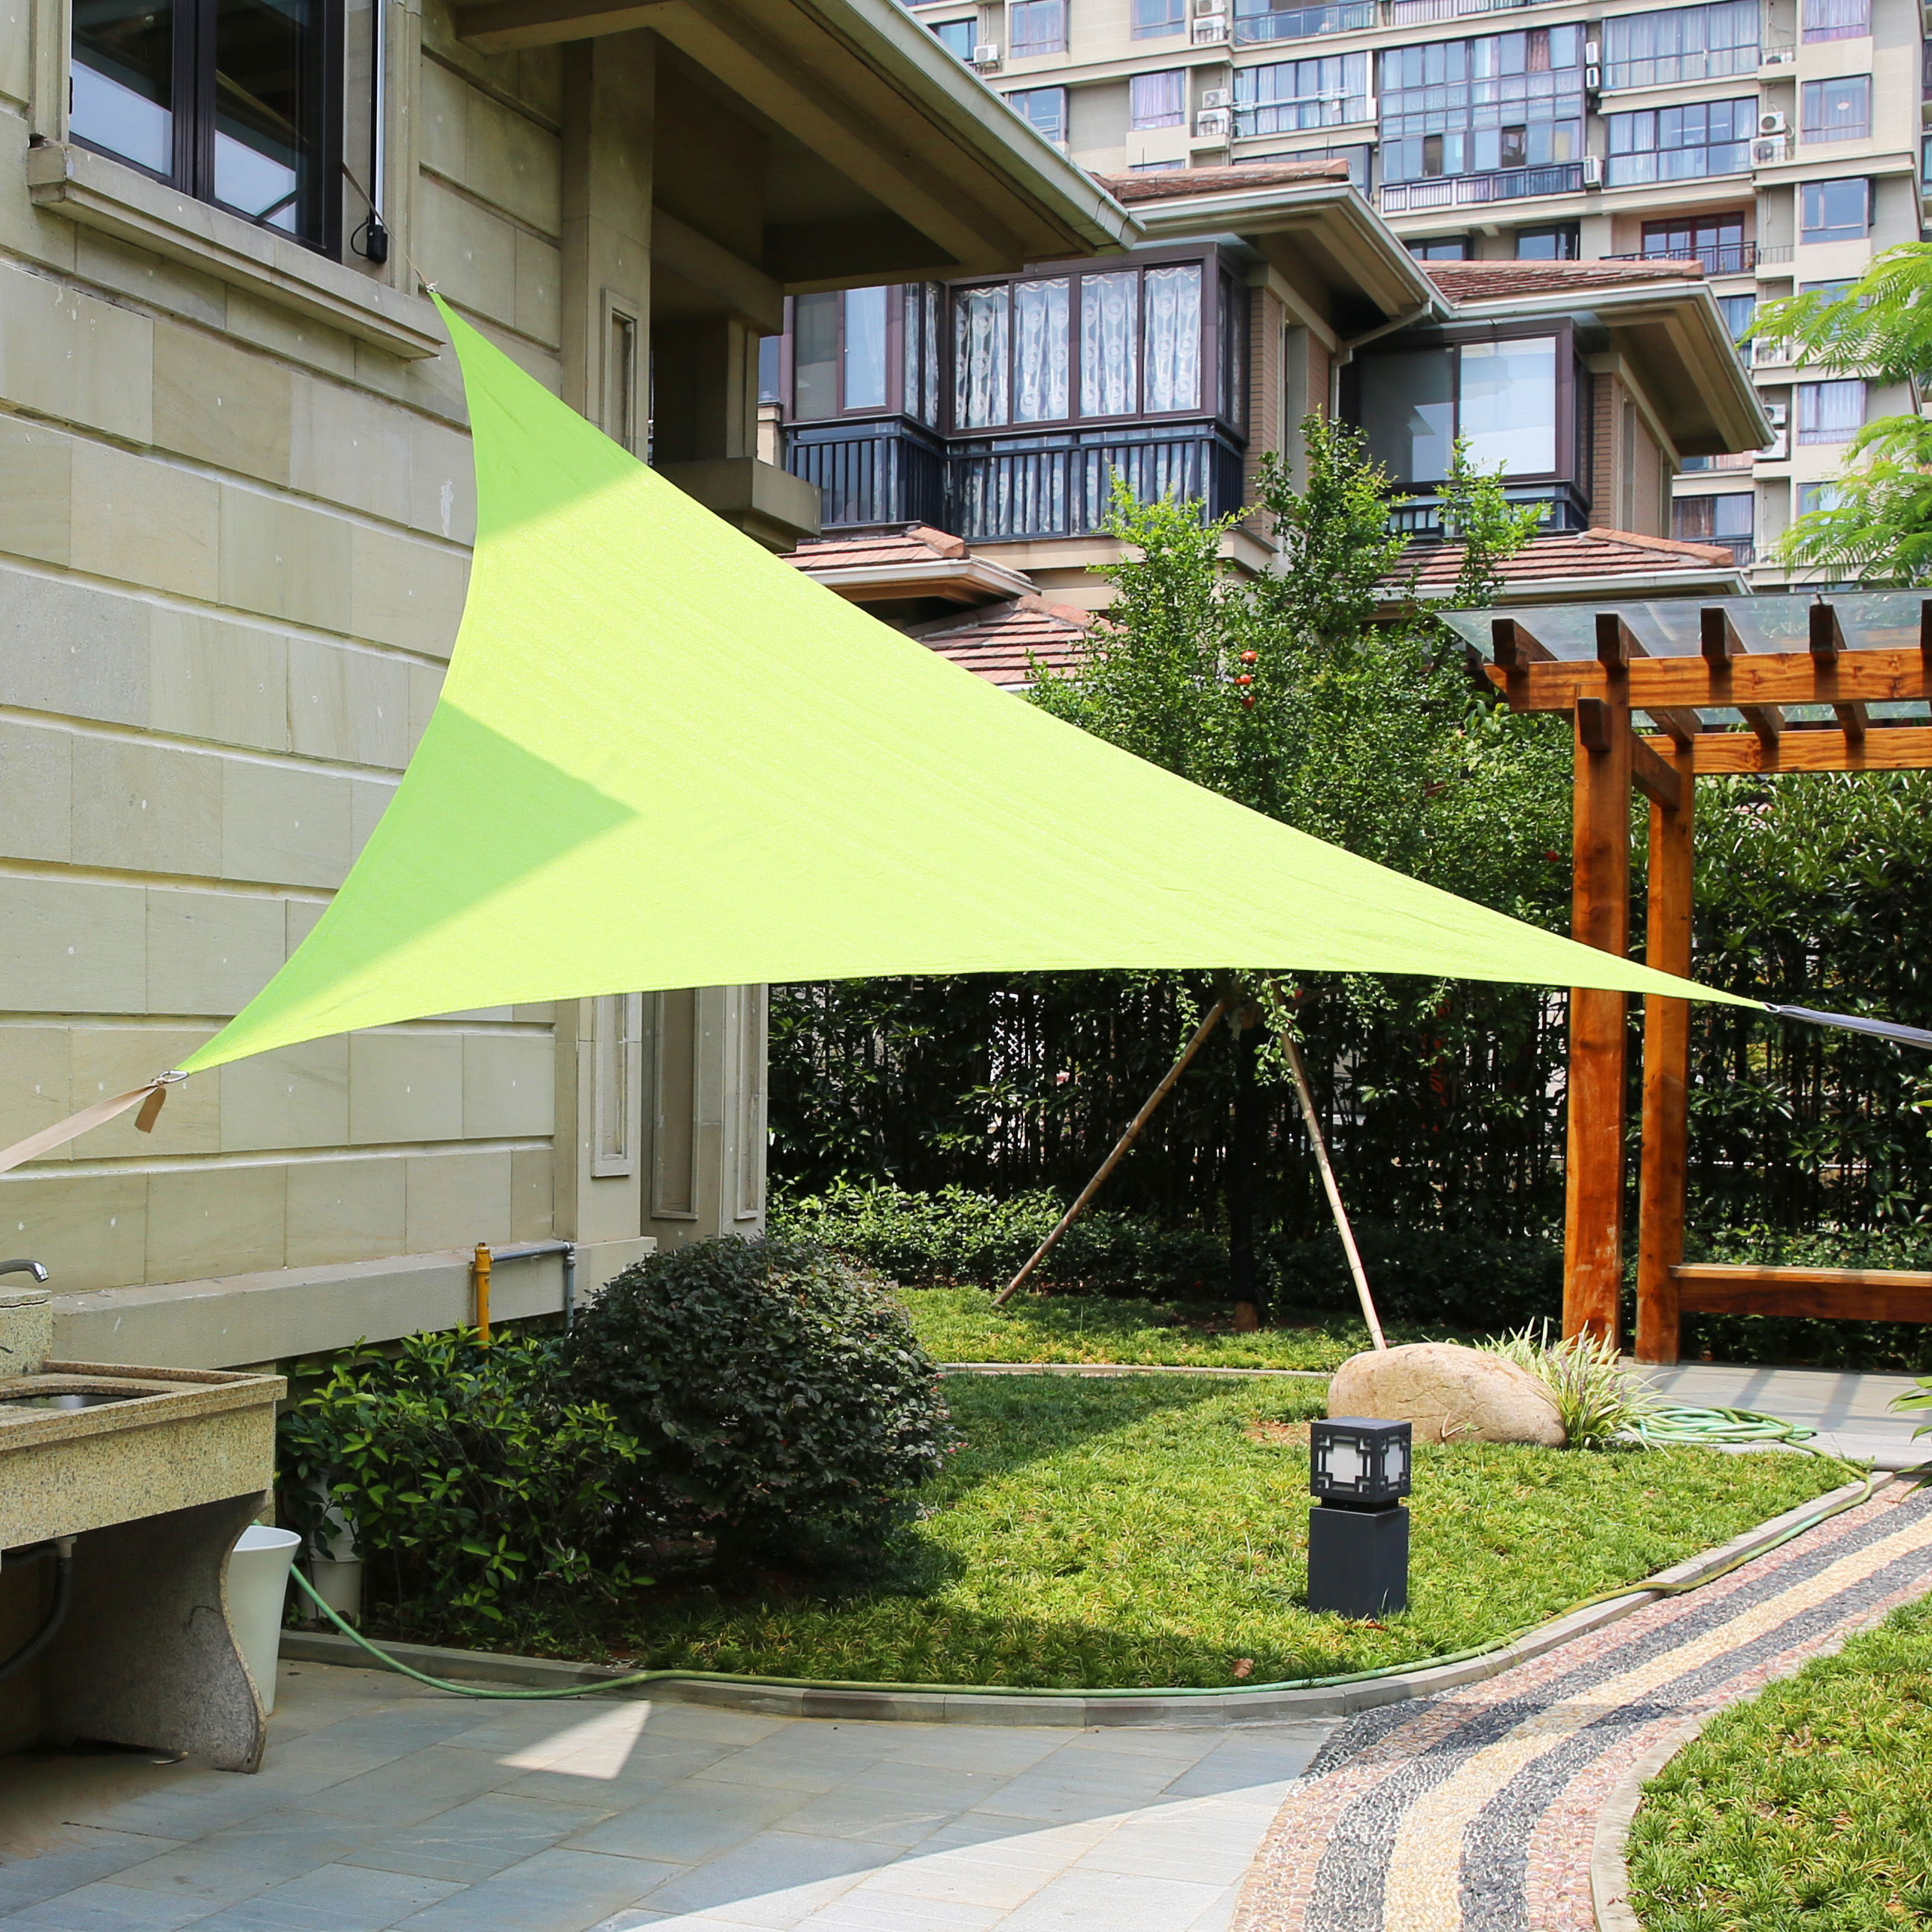 LyShade 12u0027 x 12u0027 x 12u0027 Triangle Sun Shade Sail Canopy - UV Block for Patio and Outdoor - Walmart.com & LyShade 12u0027 x 12u0027 x 12u0027 Triangle Sun Shade Sail Canopy - UV Block ...